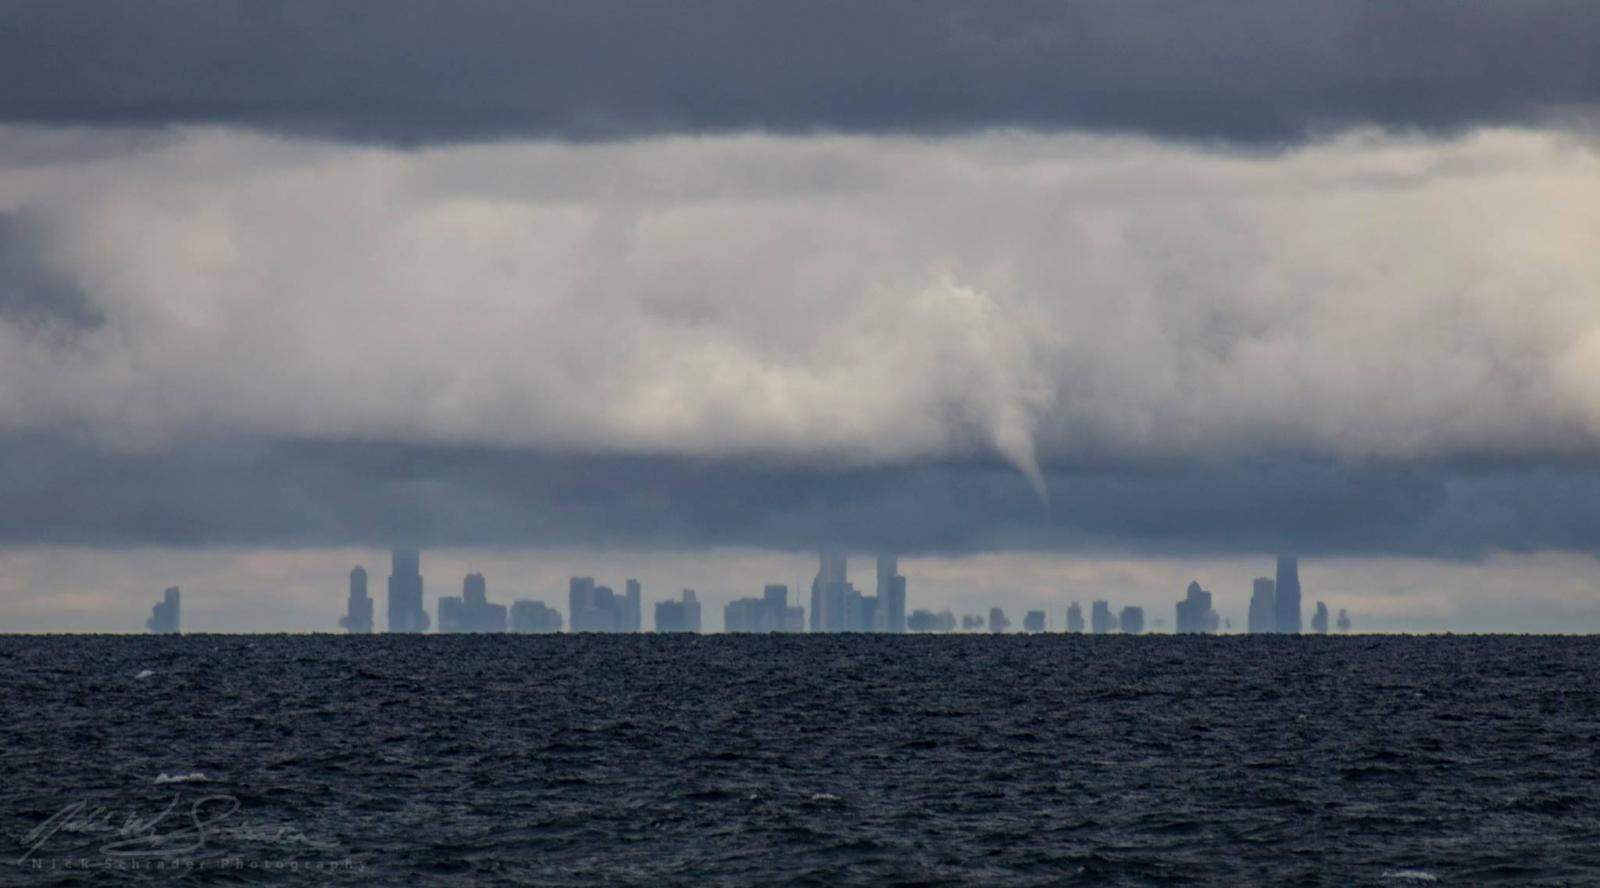 Waterspout Photo